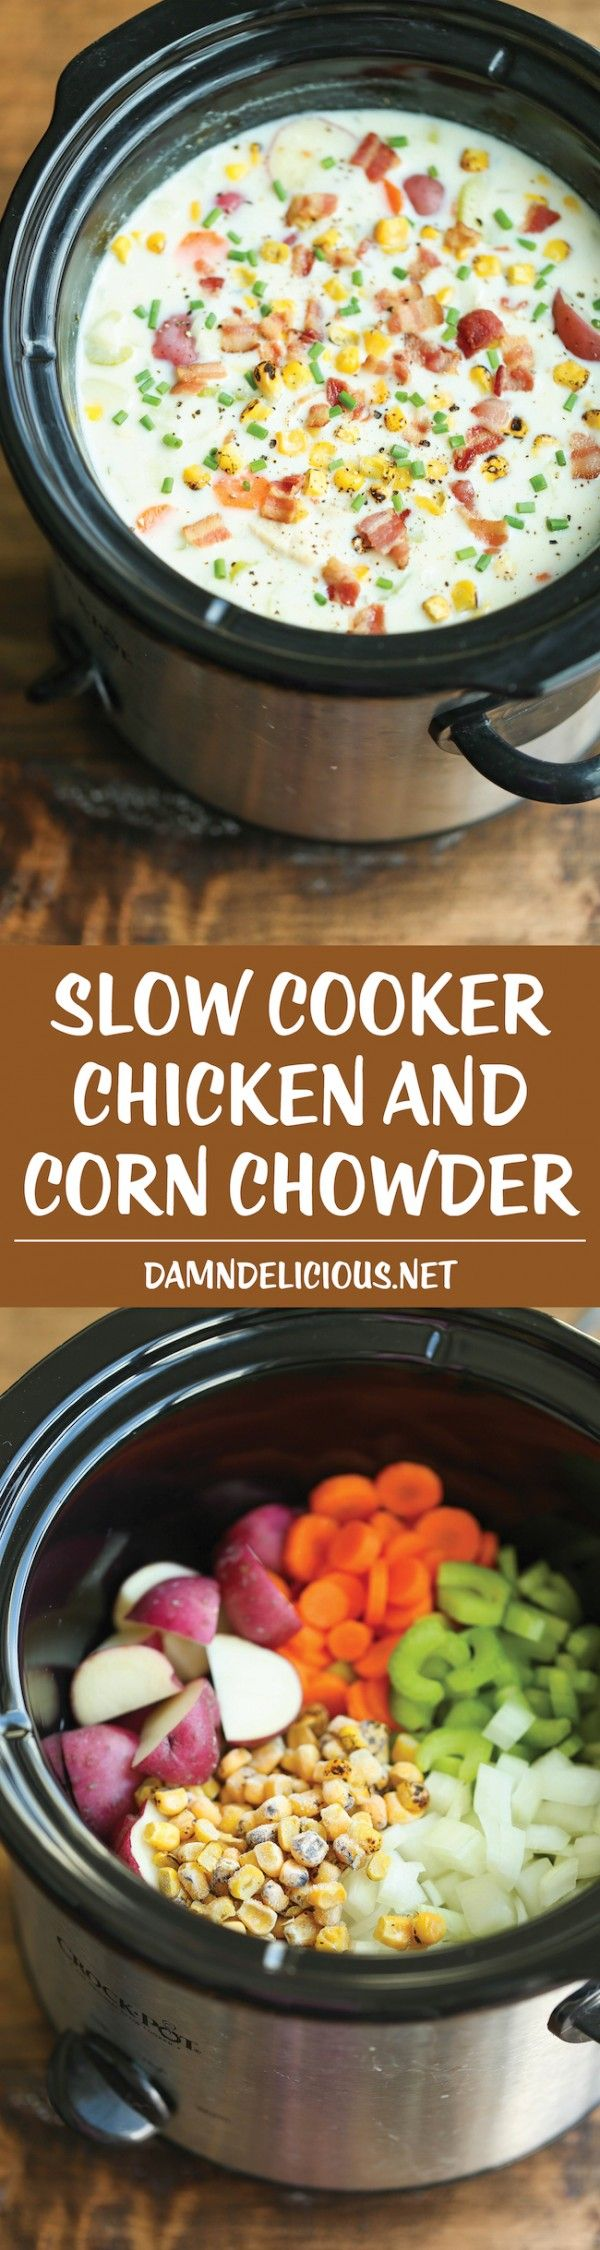 Get the recipe ♥ Slow Cooker Chicken and Corn Chowder @recipes_to_go